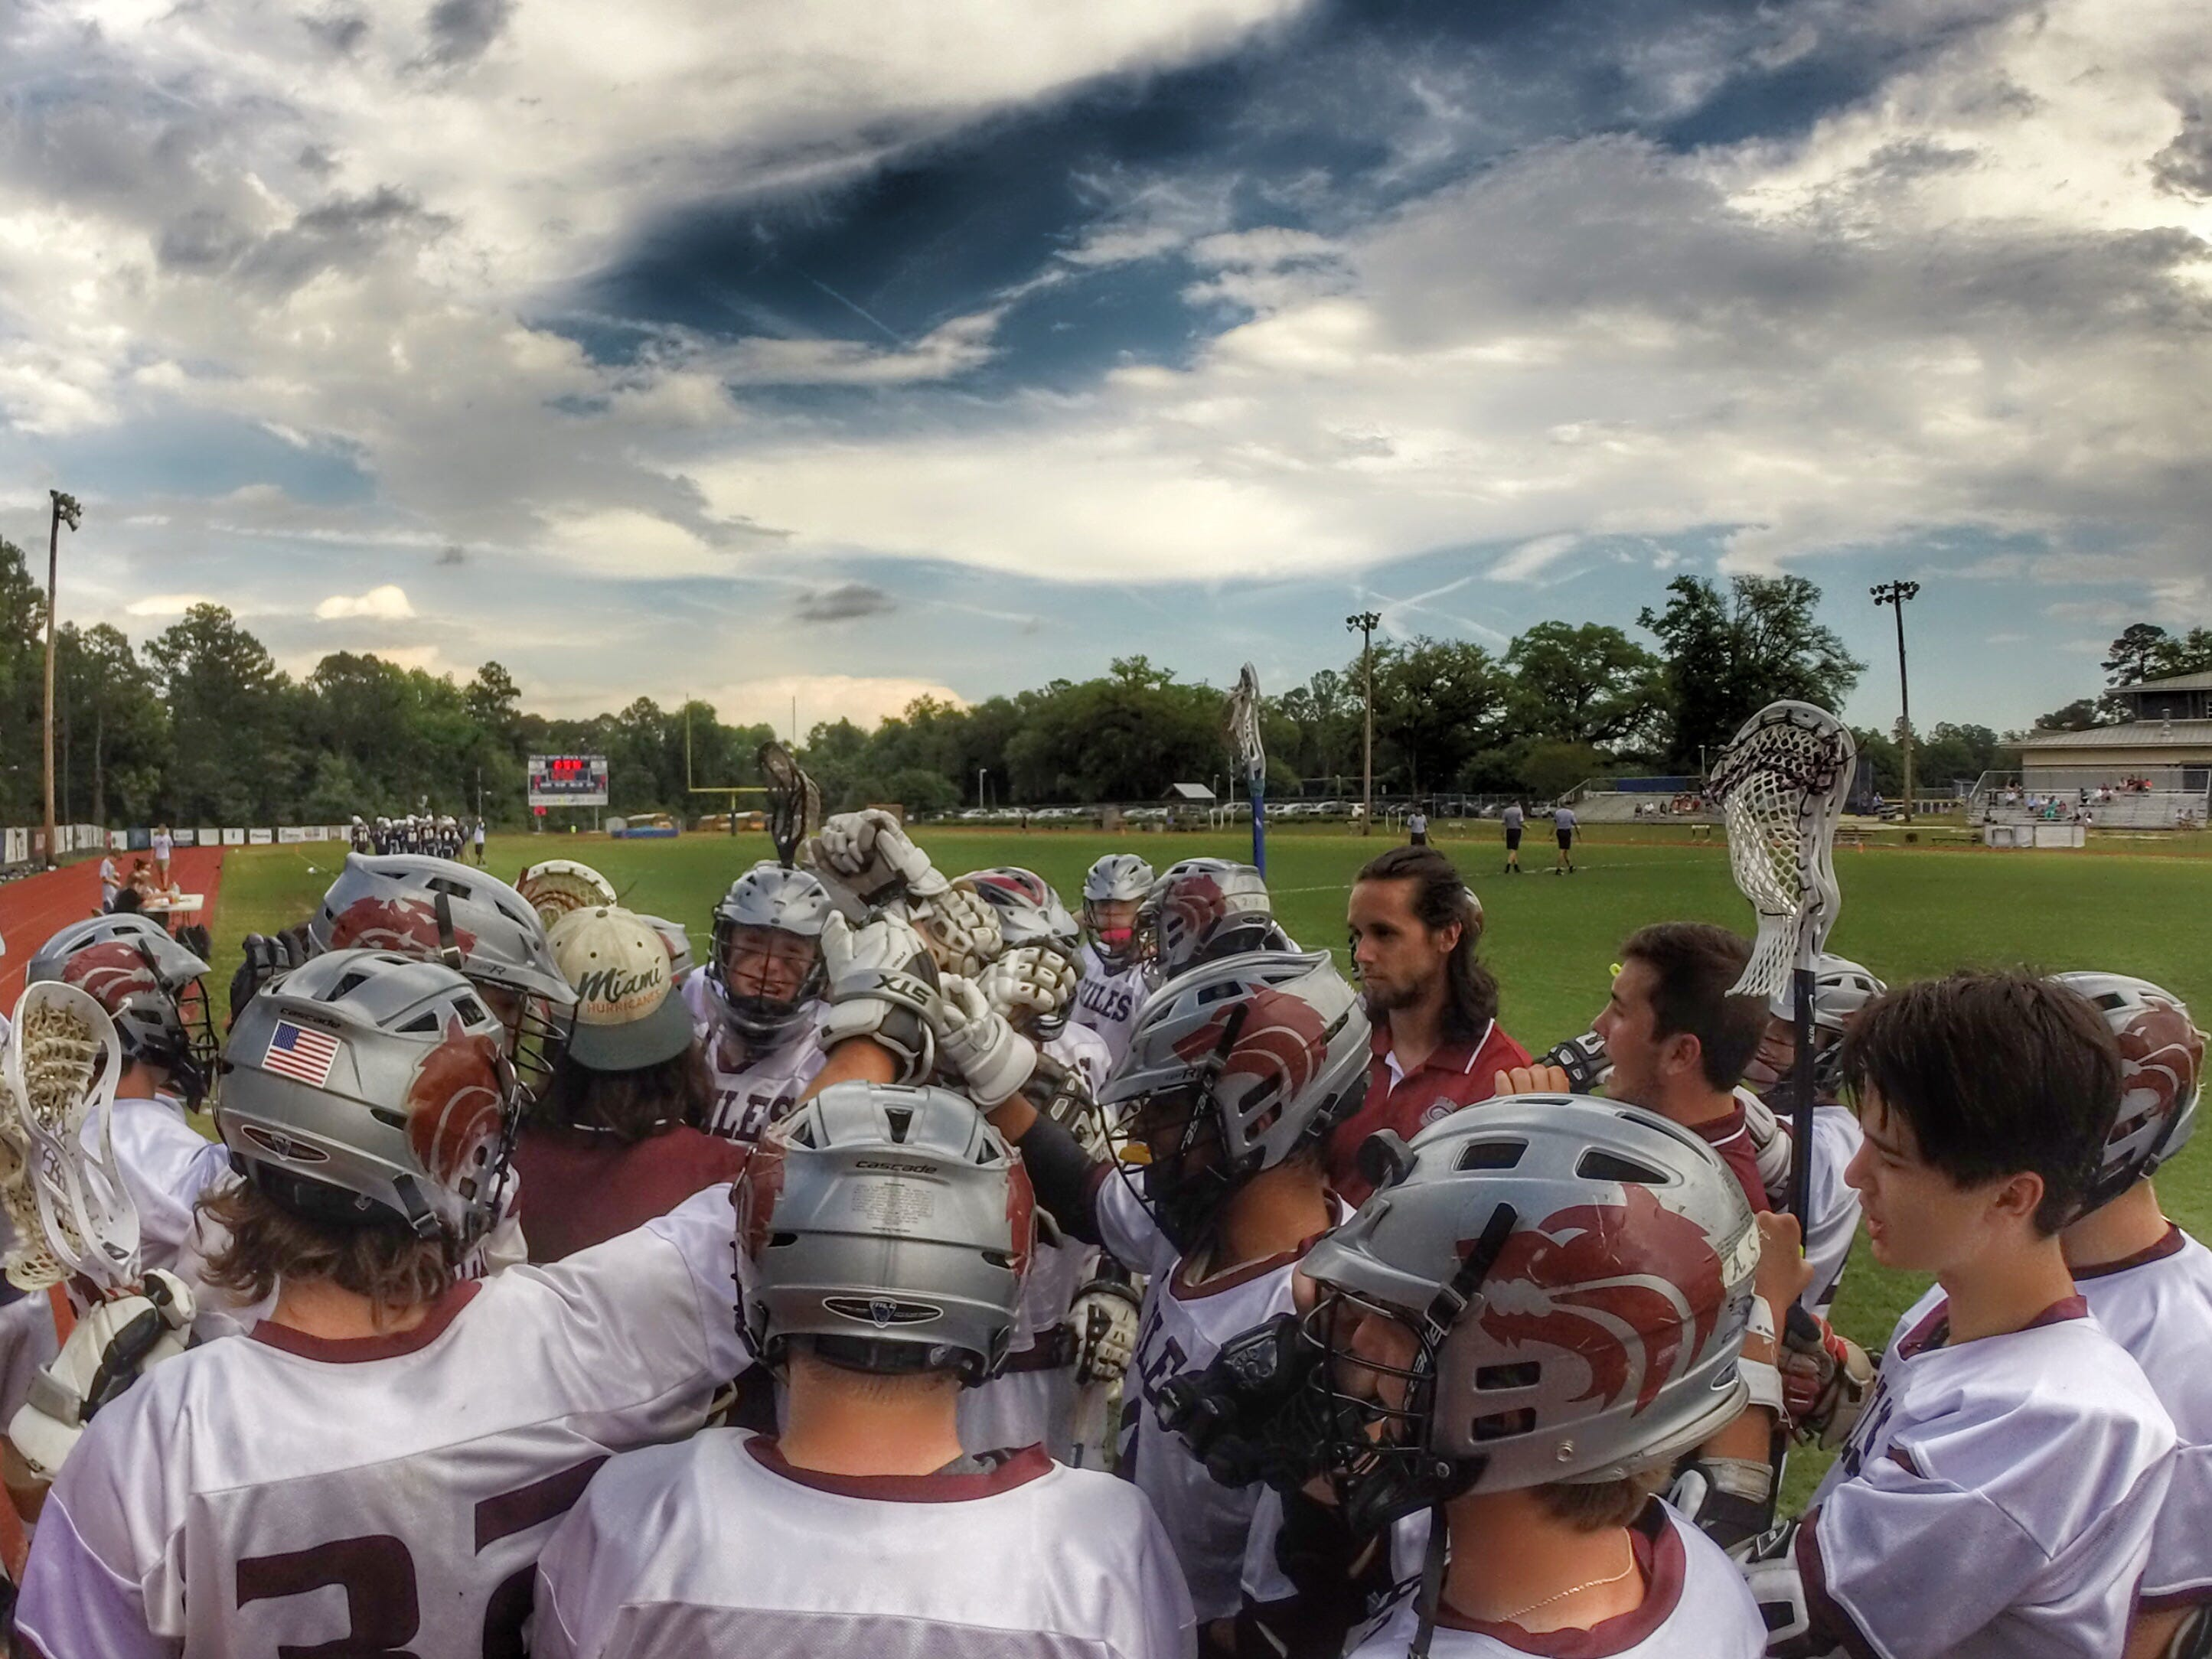 The Chiles lacrosse team prepares to play Tuesday's district semifinal game against Gulf Breeze. The Timberwolves won and will face Maclay in Thursday's championship game.